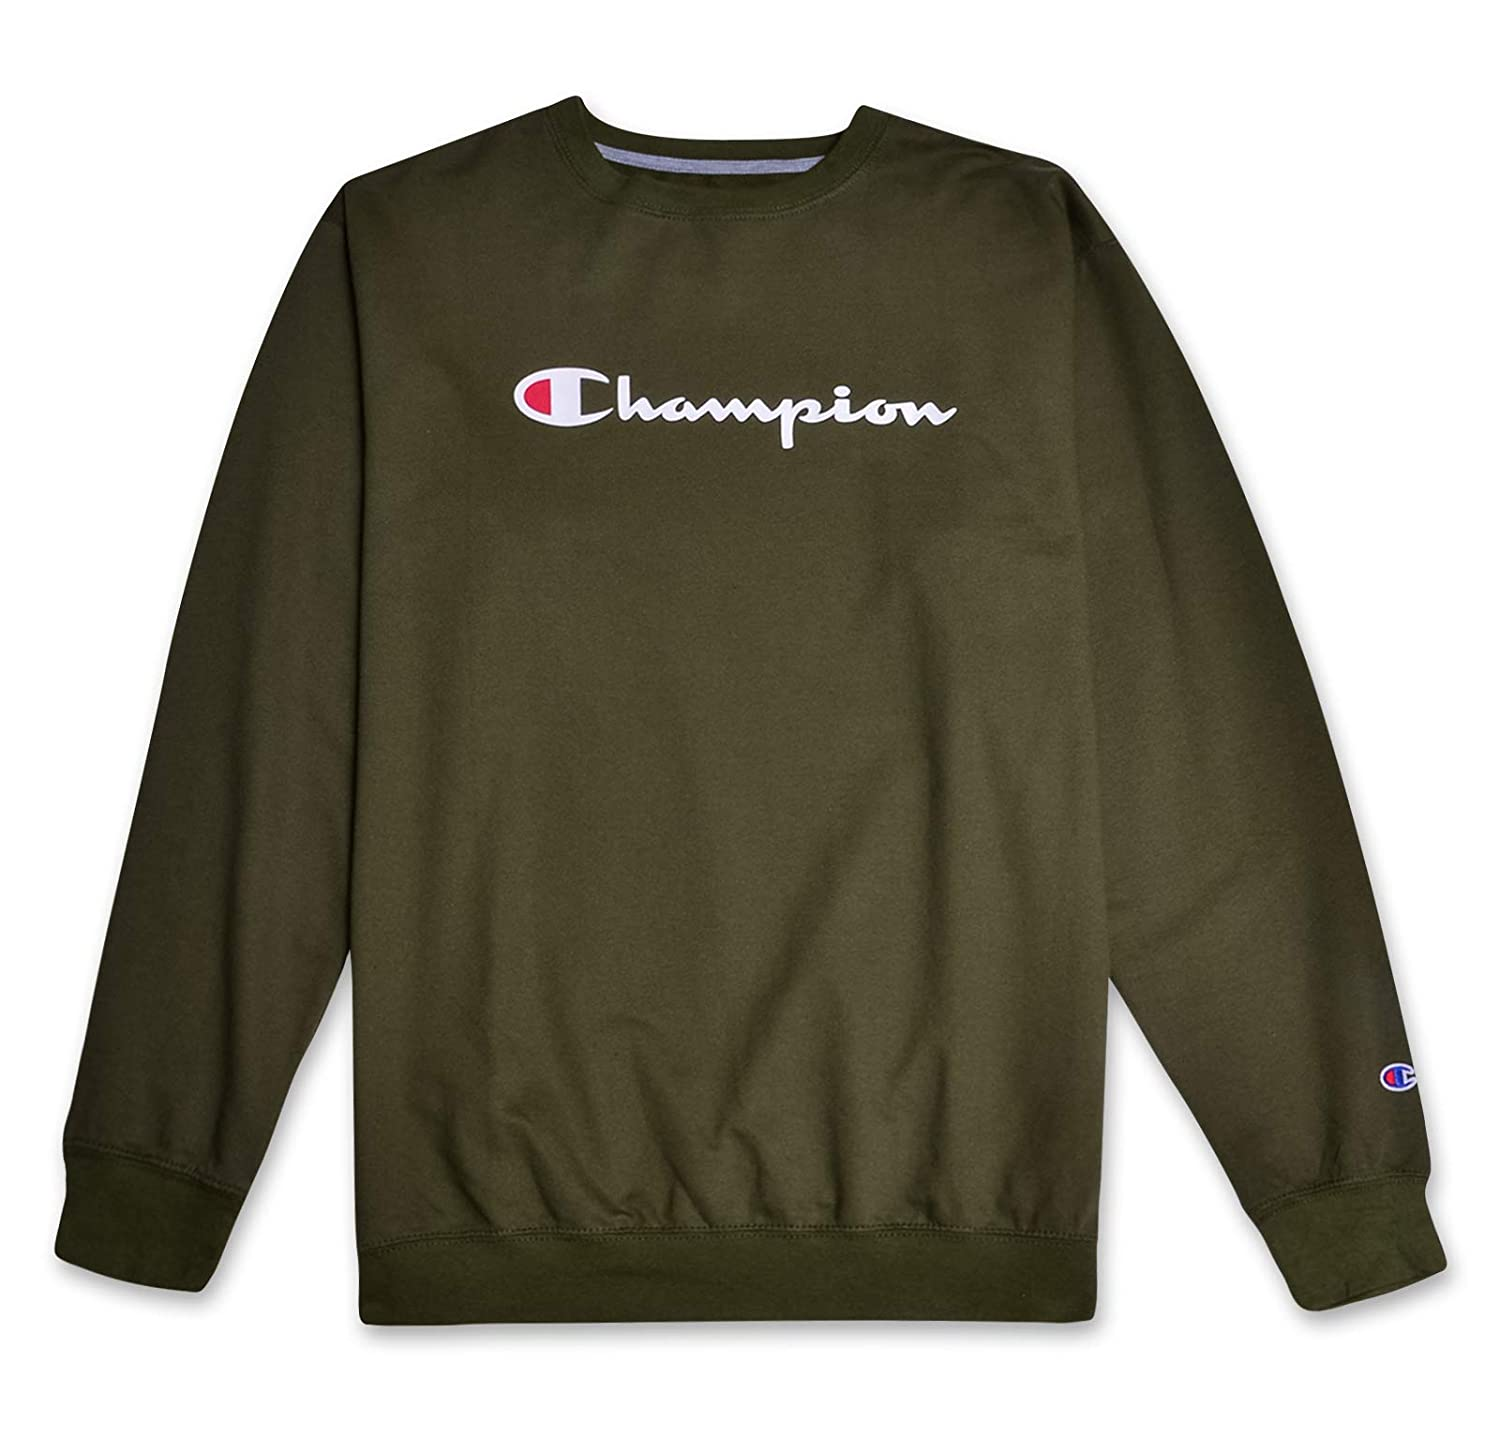 bffe83e6 Amazon.com: Champion Mens Big and Tall Crewneck Logo Pullover Sweatshirt:  Clothing